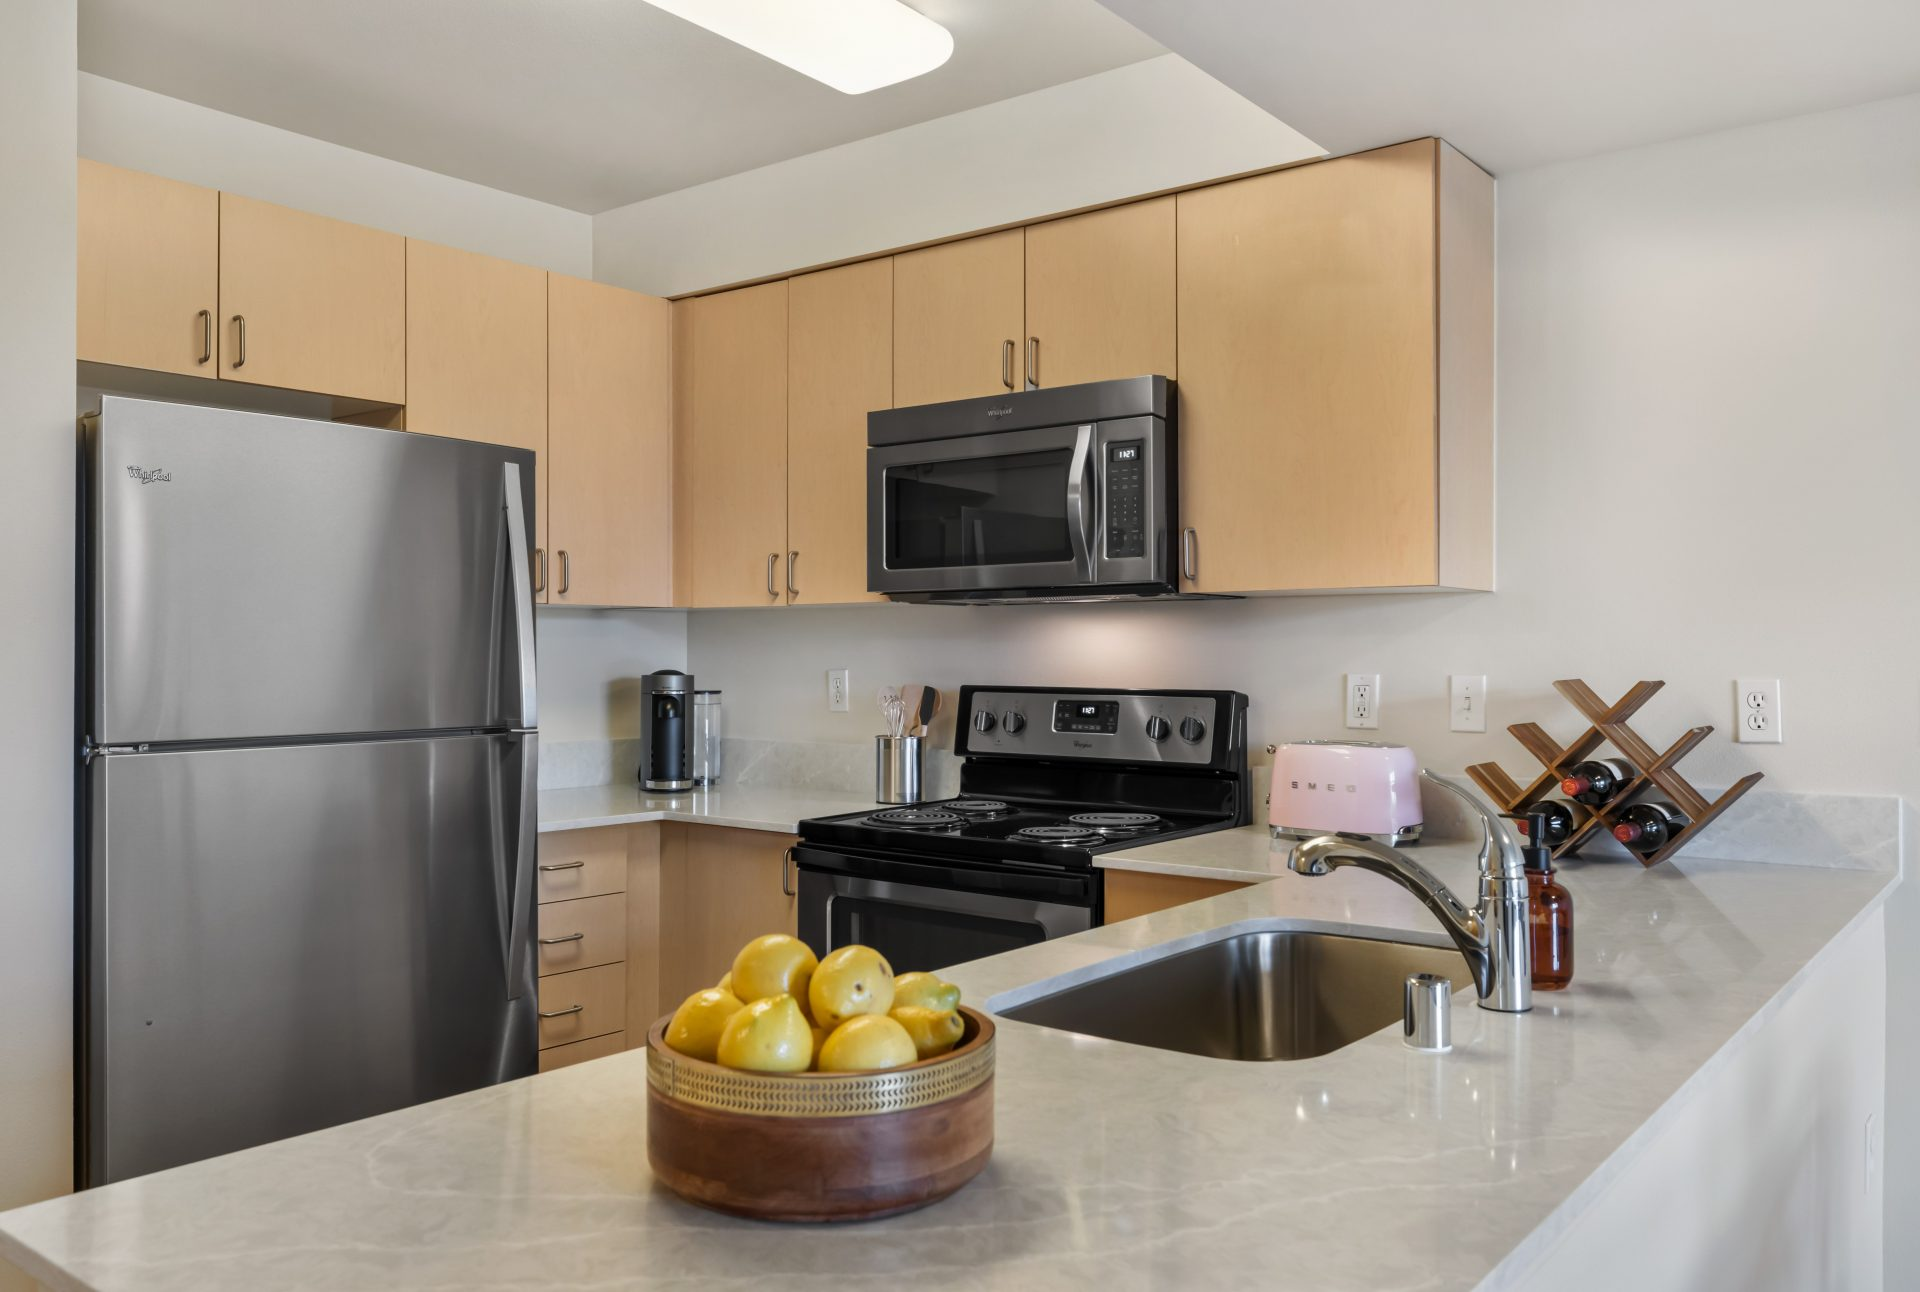 Modern kitchens with granite countertops - Thornton Place Apartments